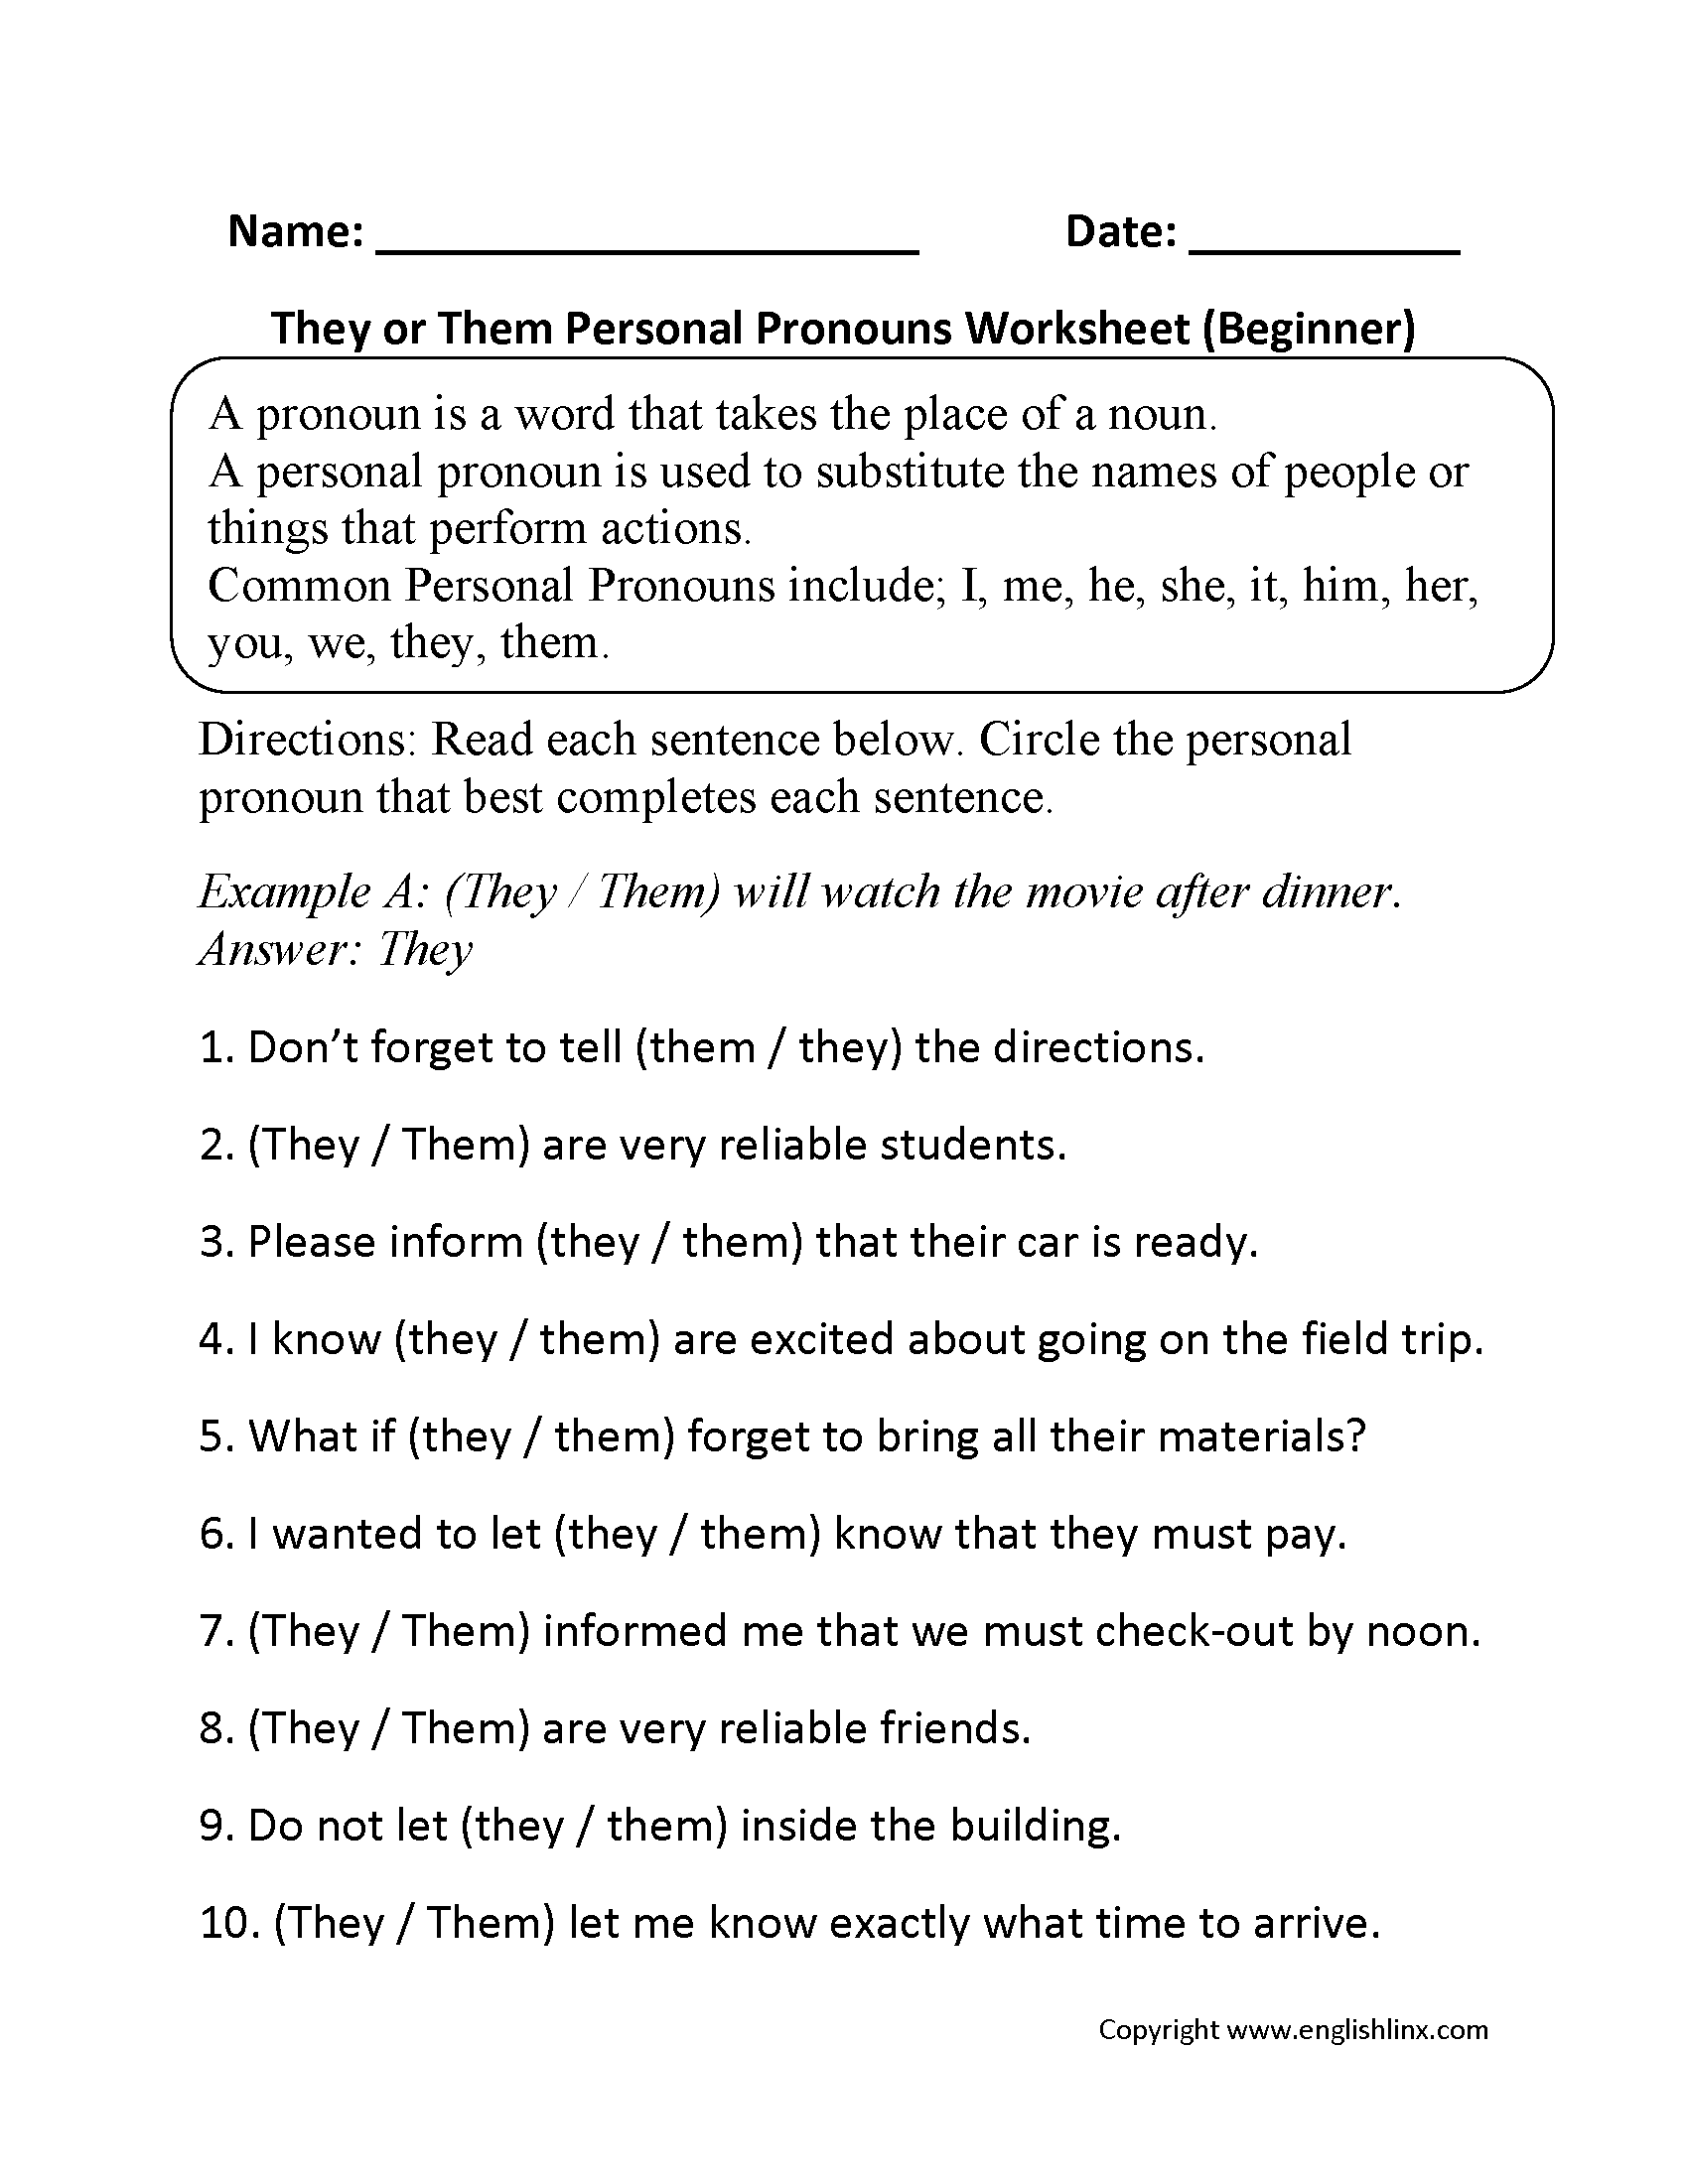 They Or Them Personal Pronouns Worksheets Beginner